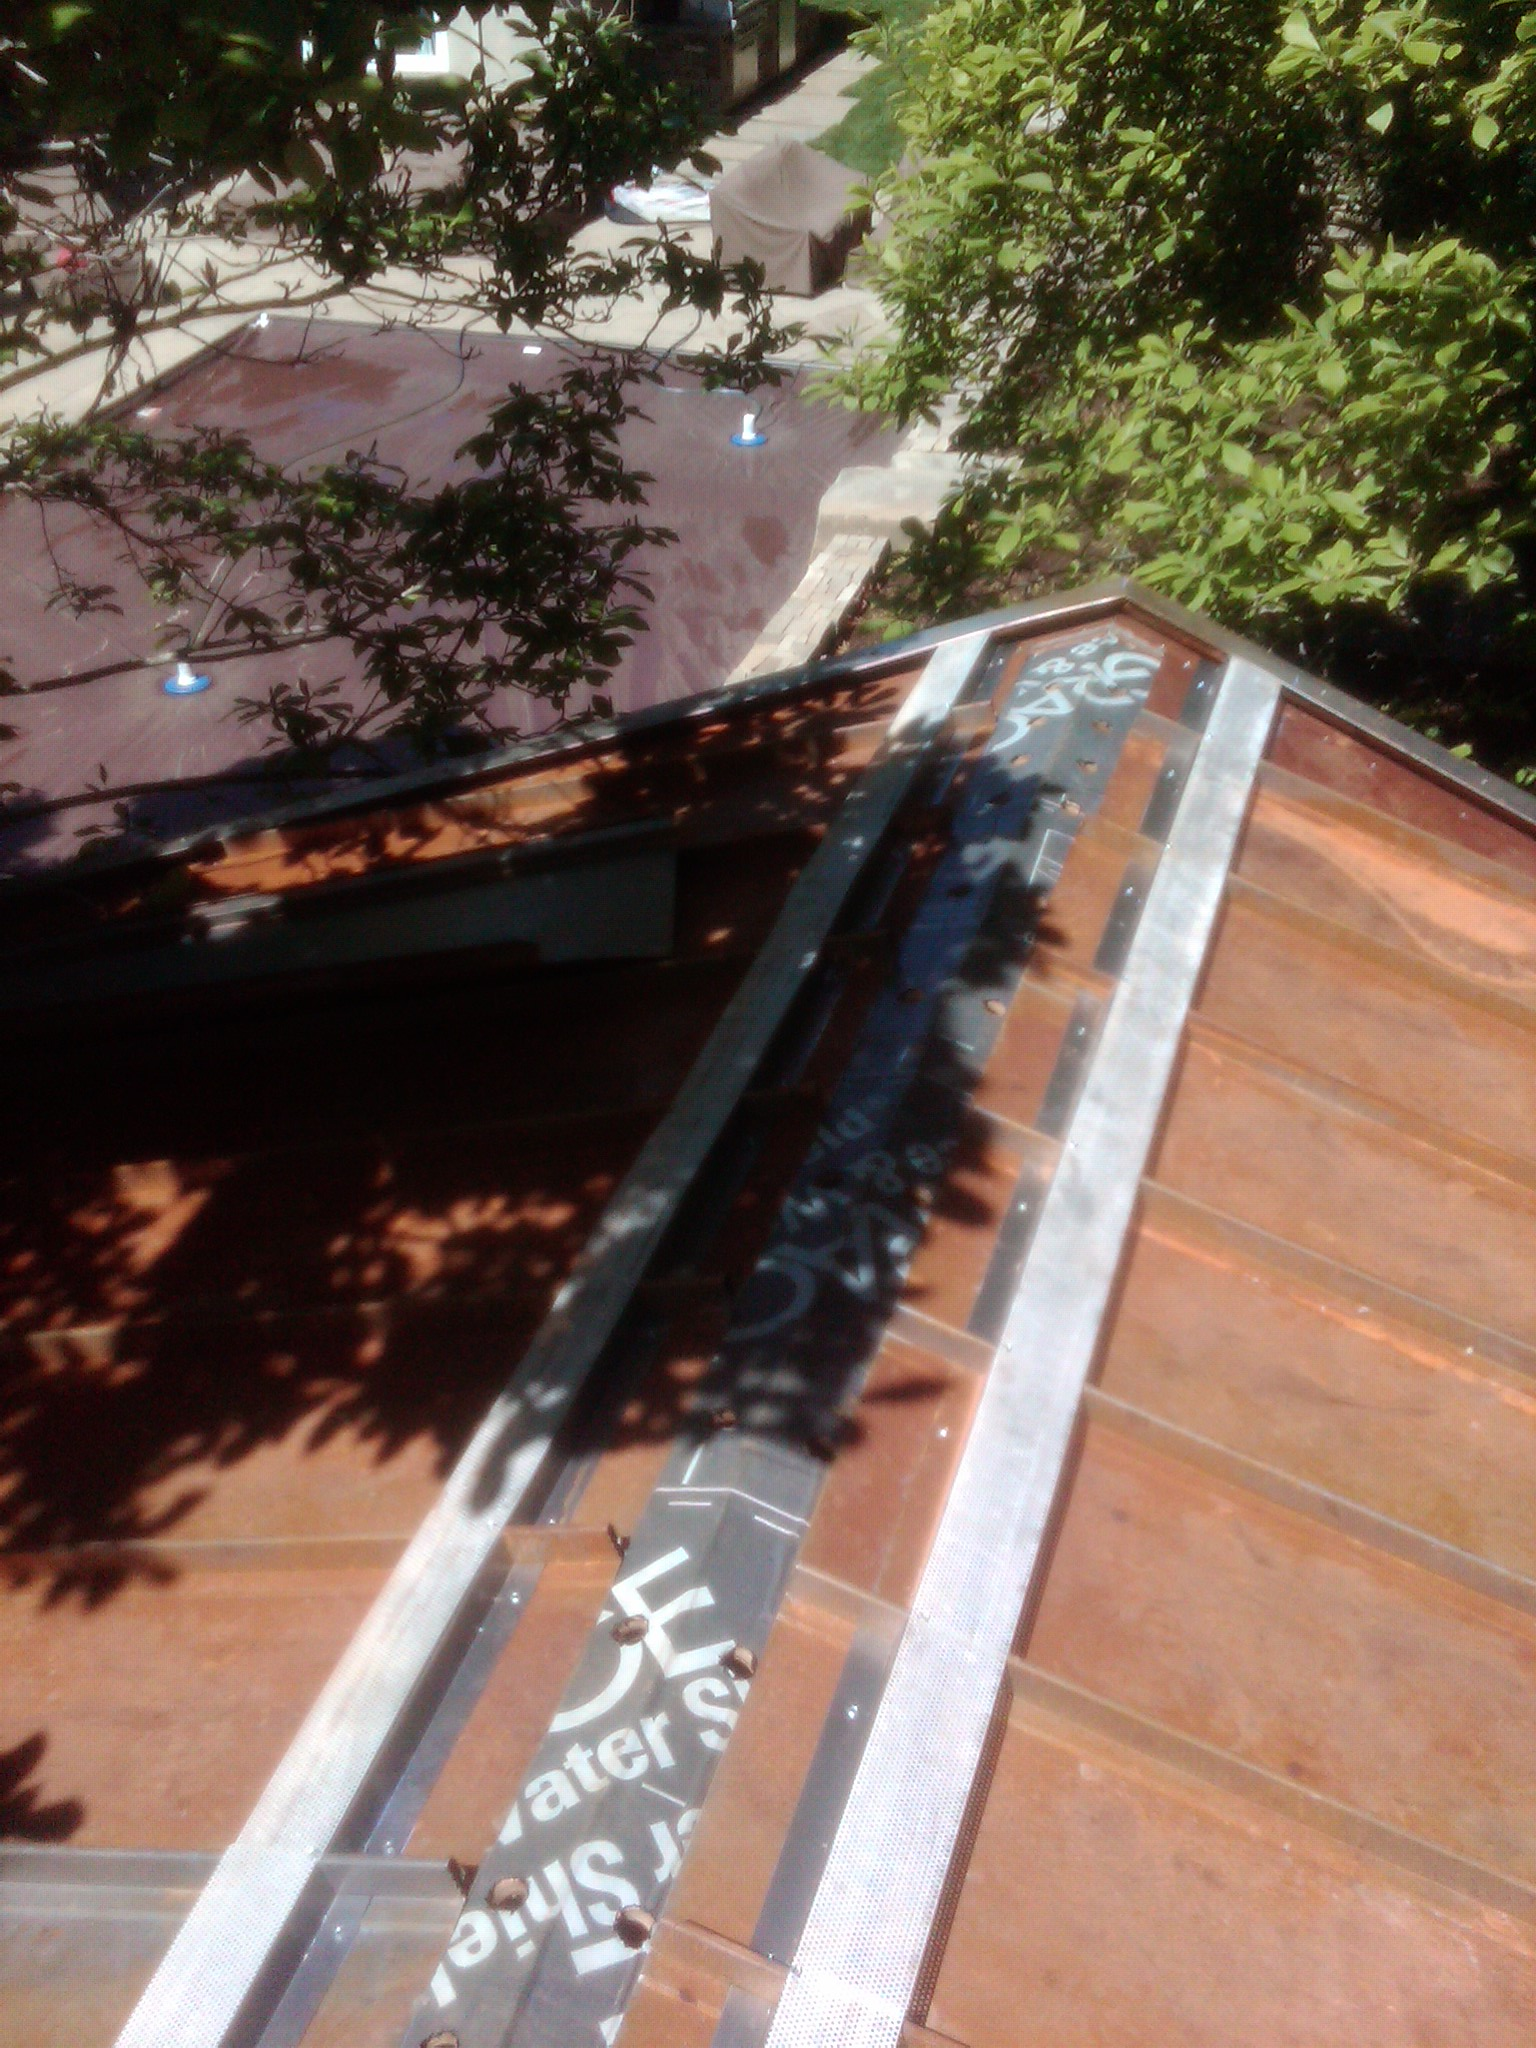 Corten steel roofing going on. Corten is designed to weather in place, and the resulting rust creates a natural protection for the steel